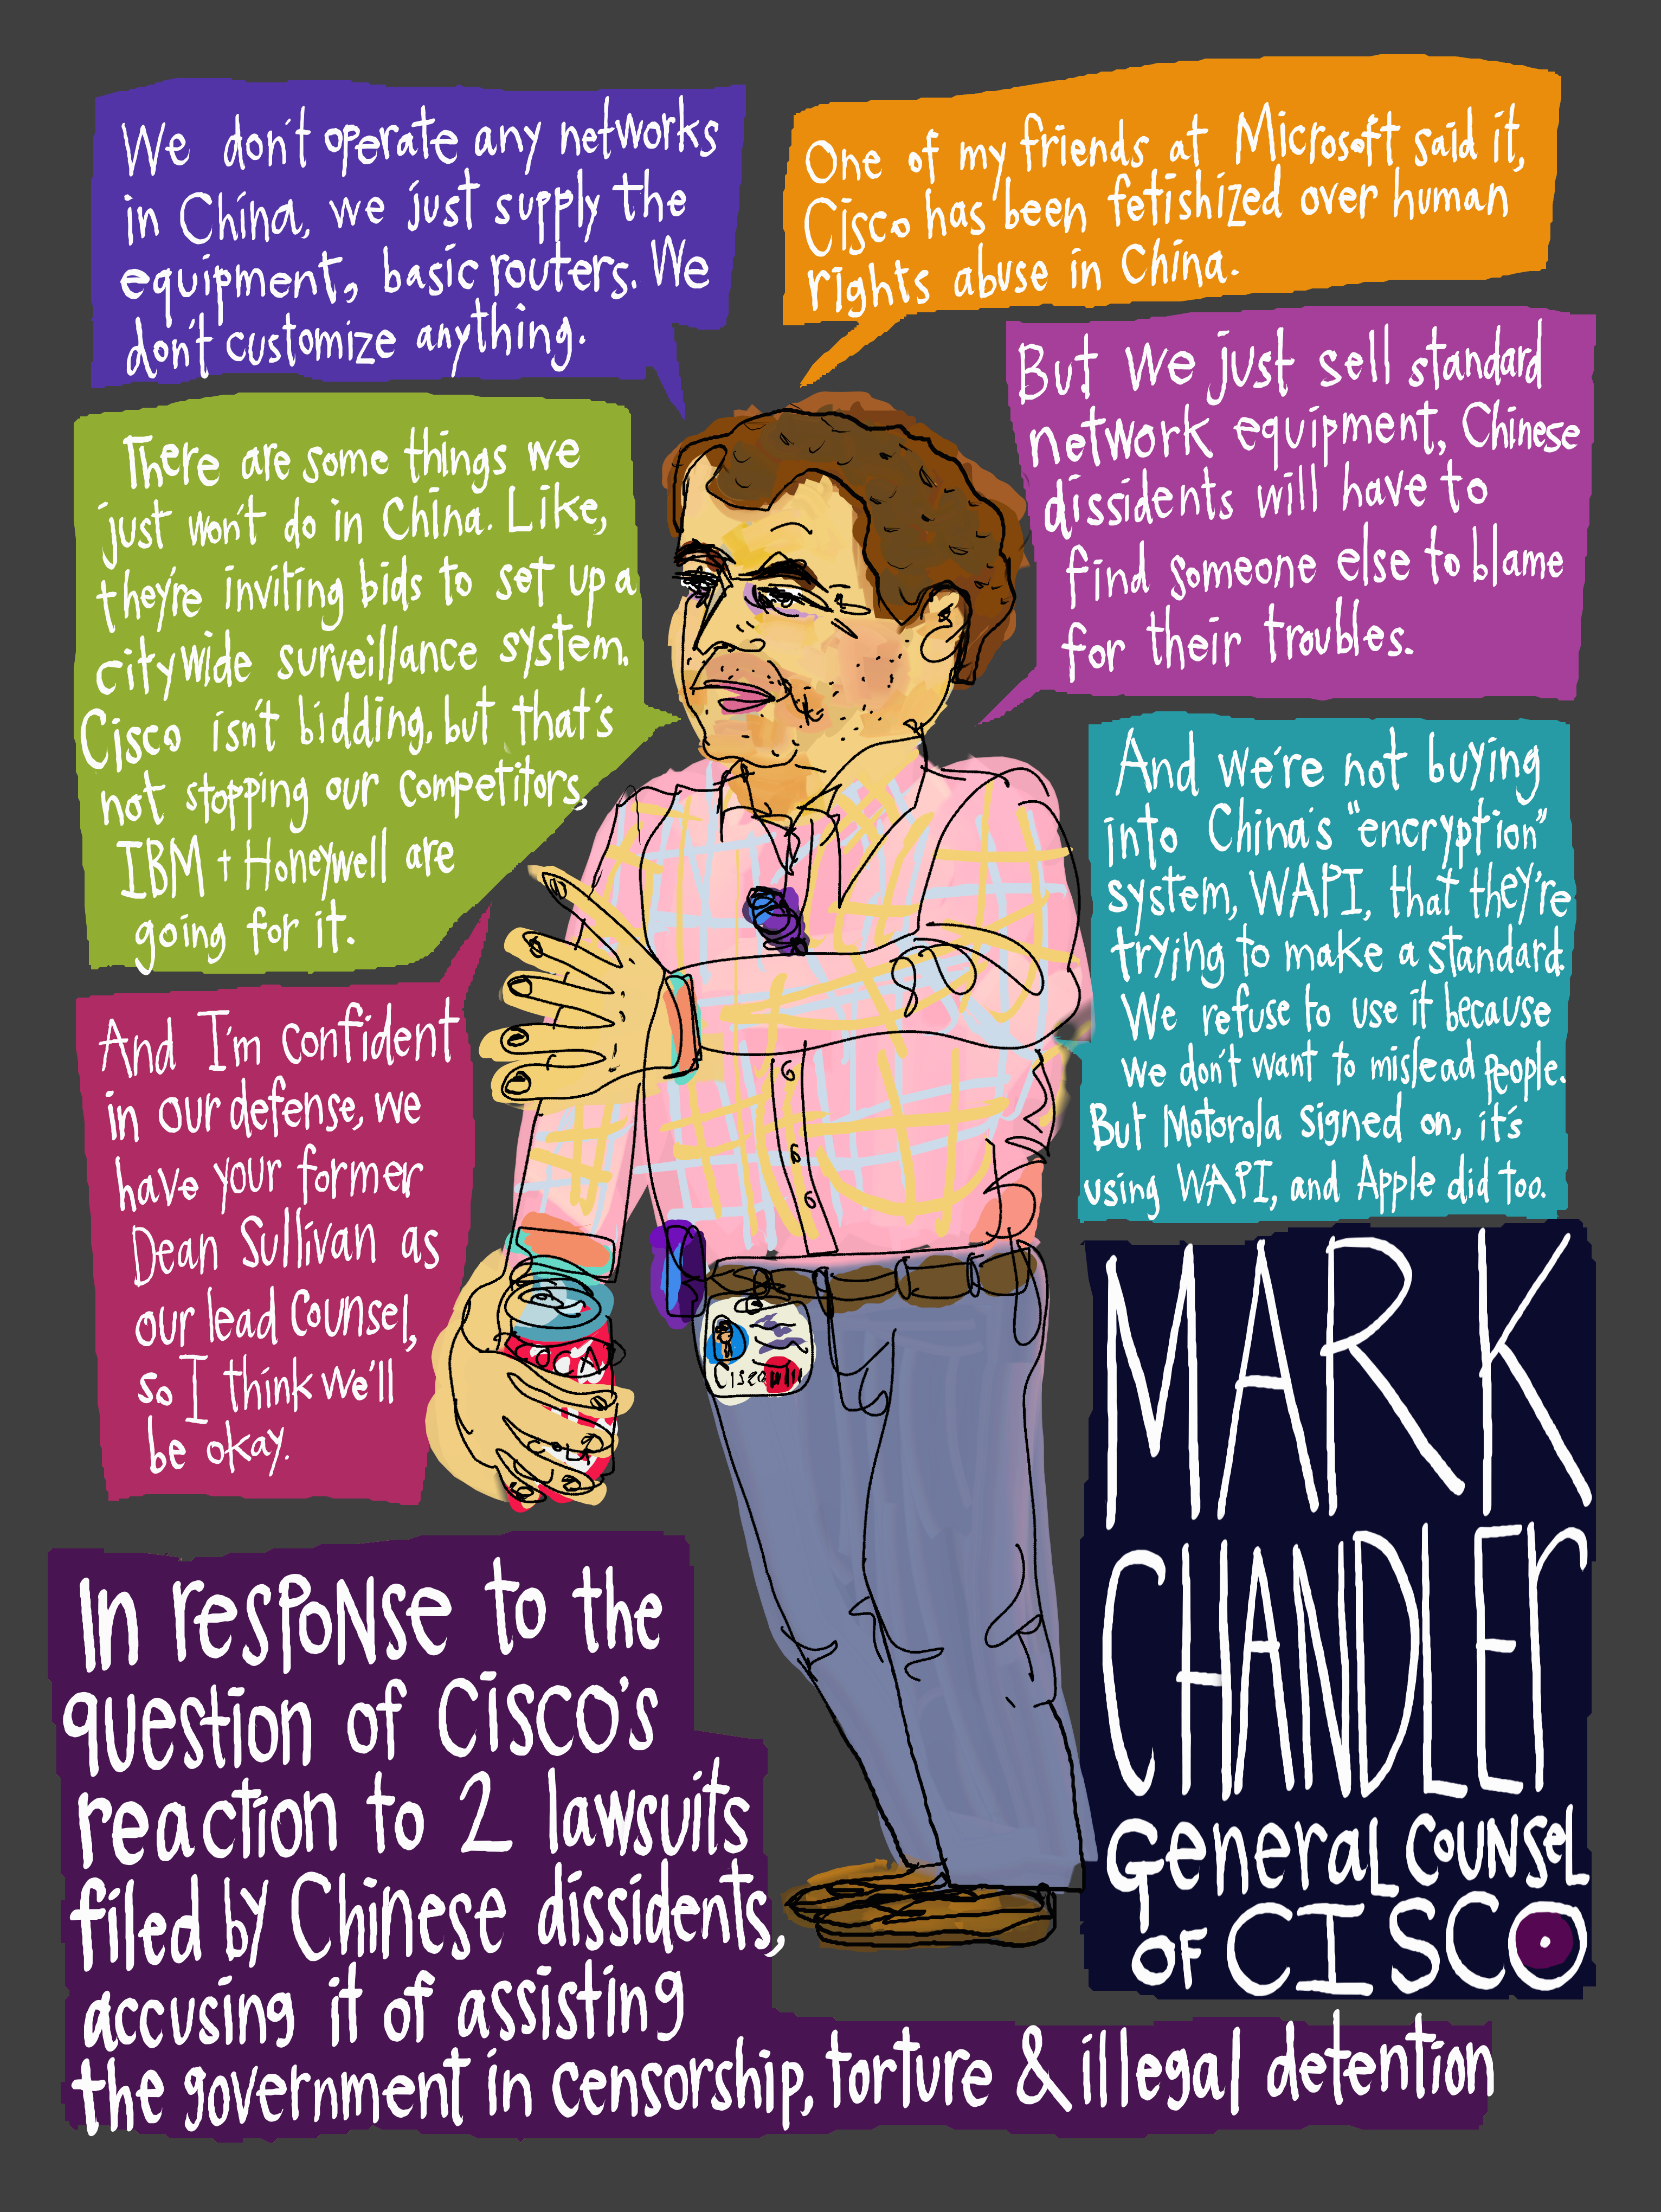 Mark-Chandler-General-Counsel-of-Cisco-on-the-question-of-China-dissidents-lawsuits-against-Cisco